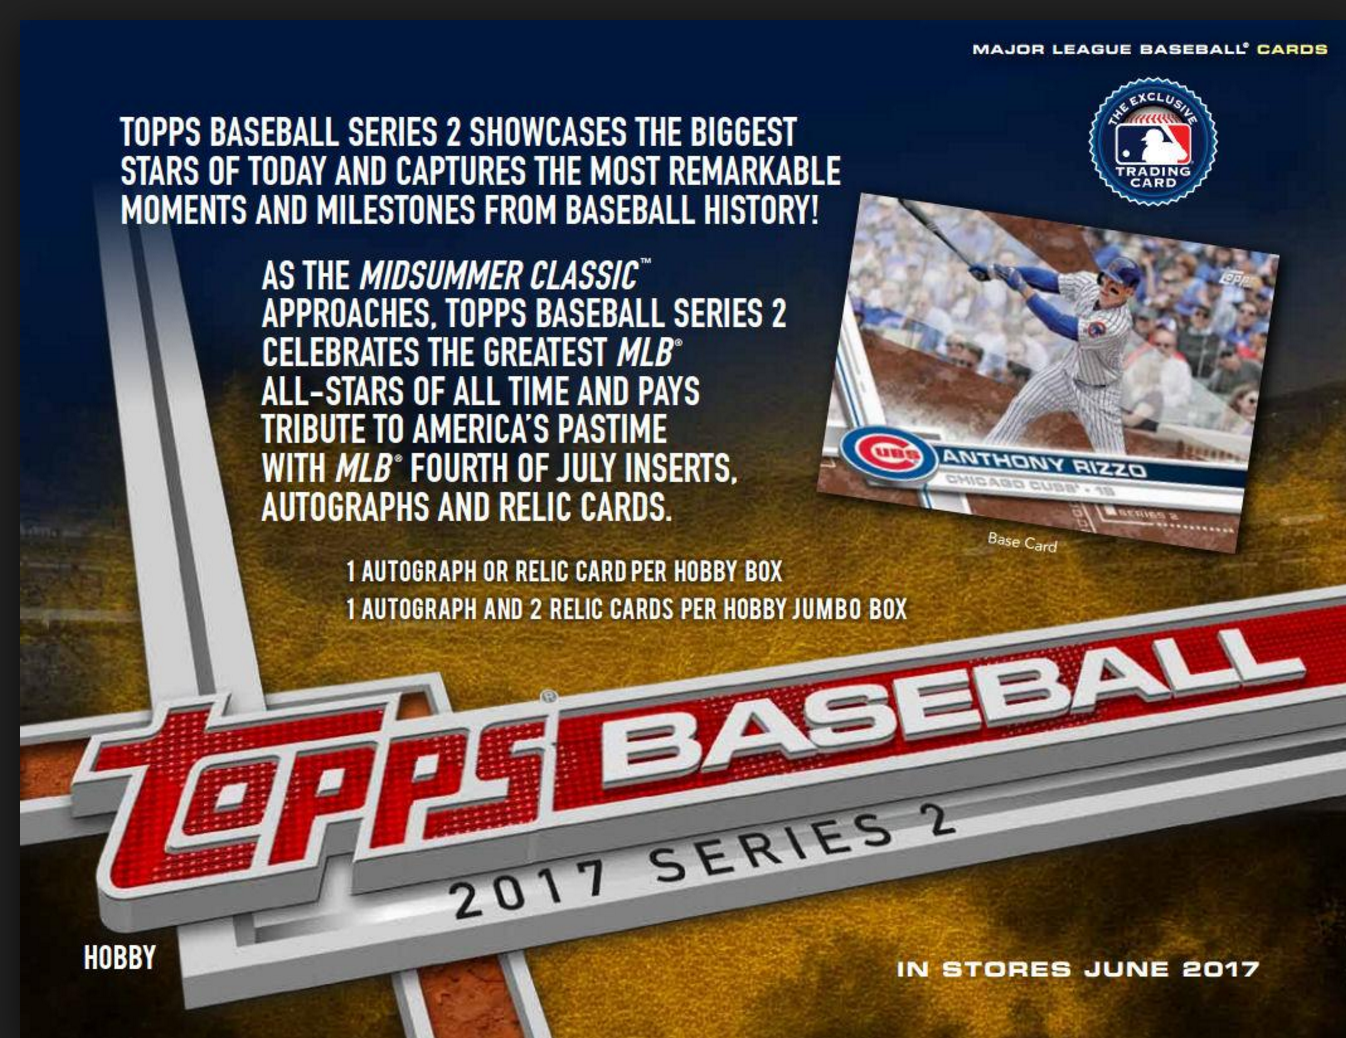 A Closer Look At The 2017 Topps Series 2 Checklist